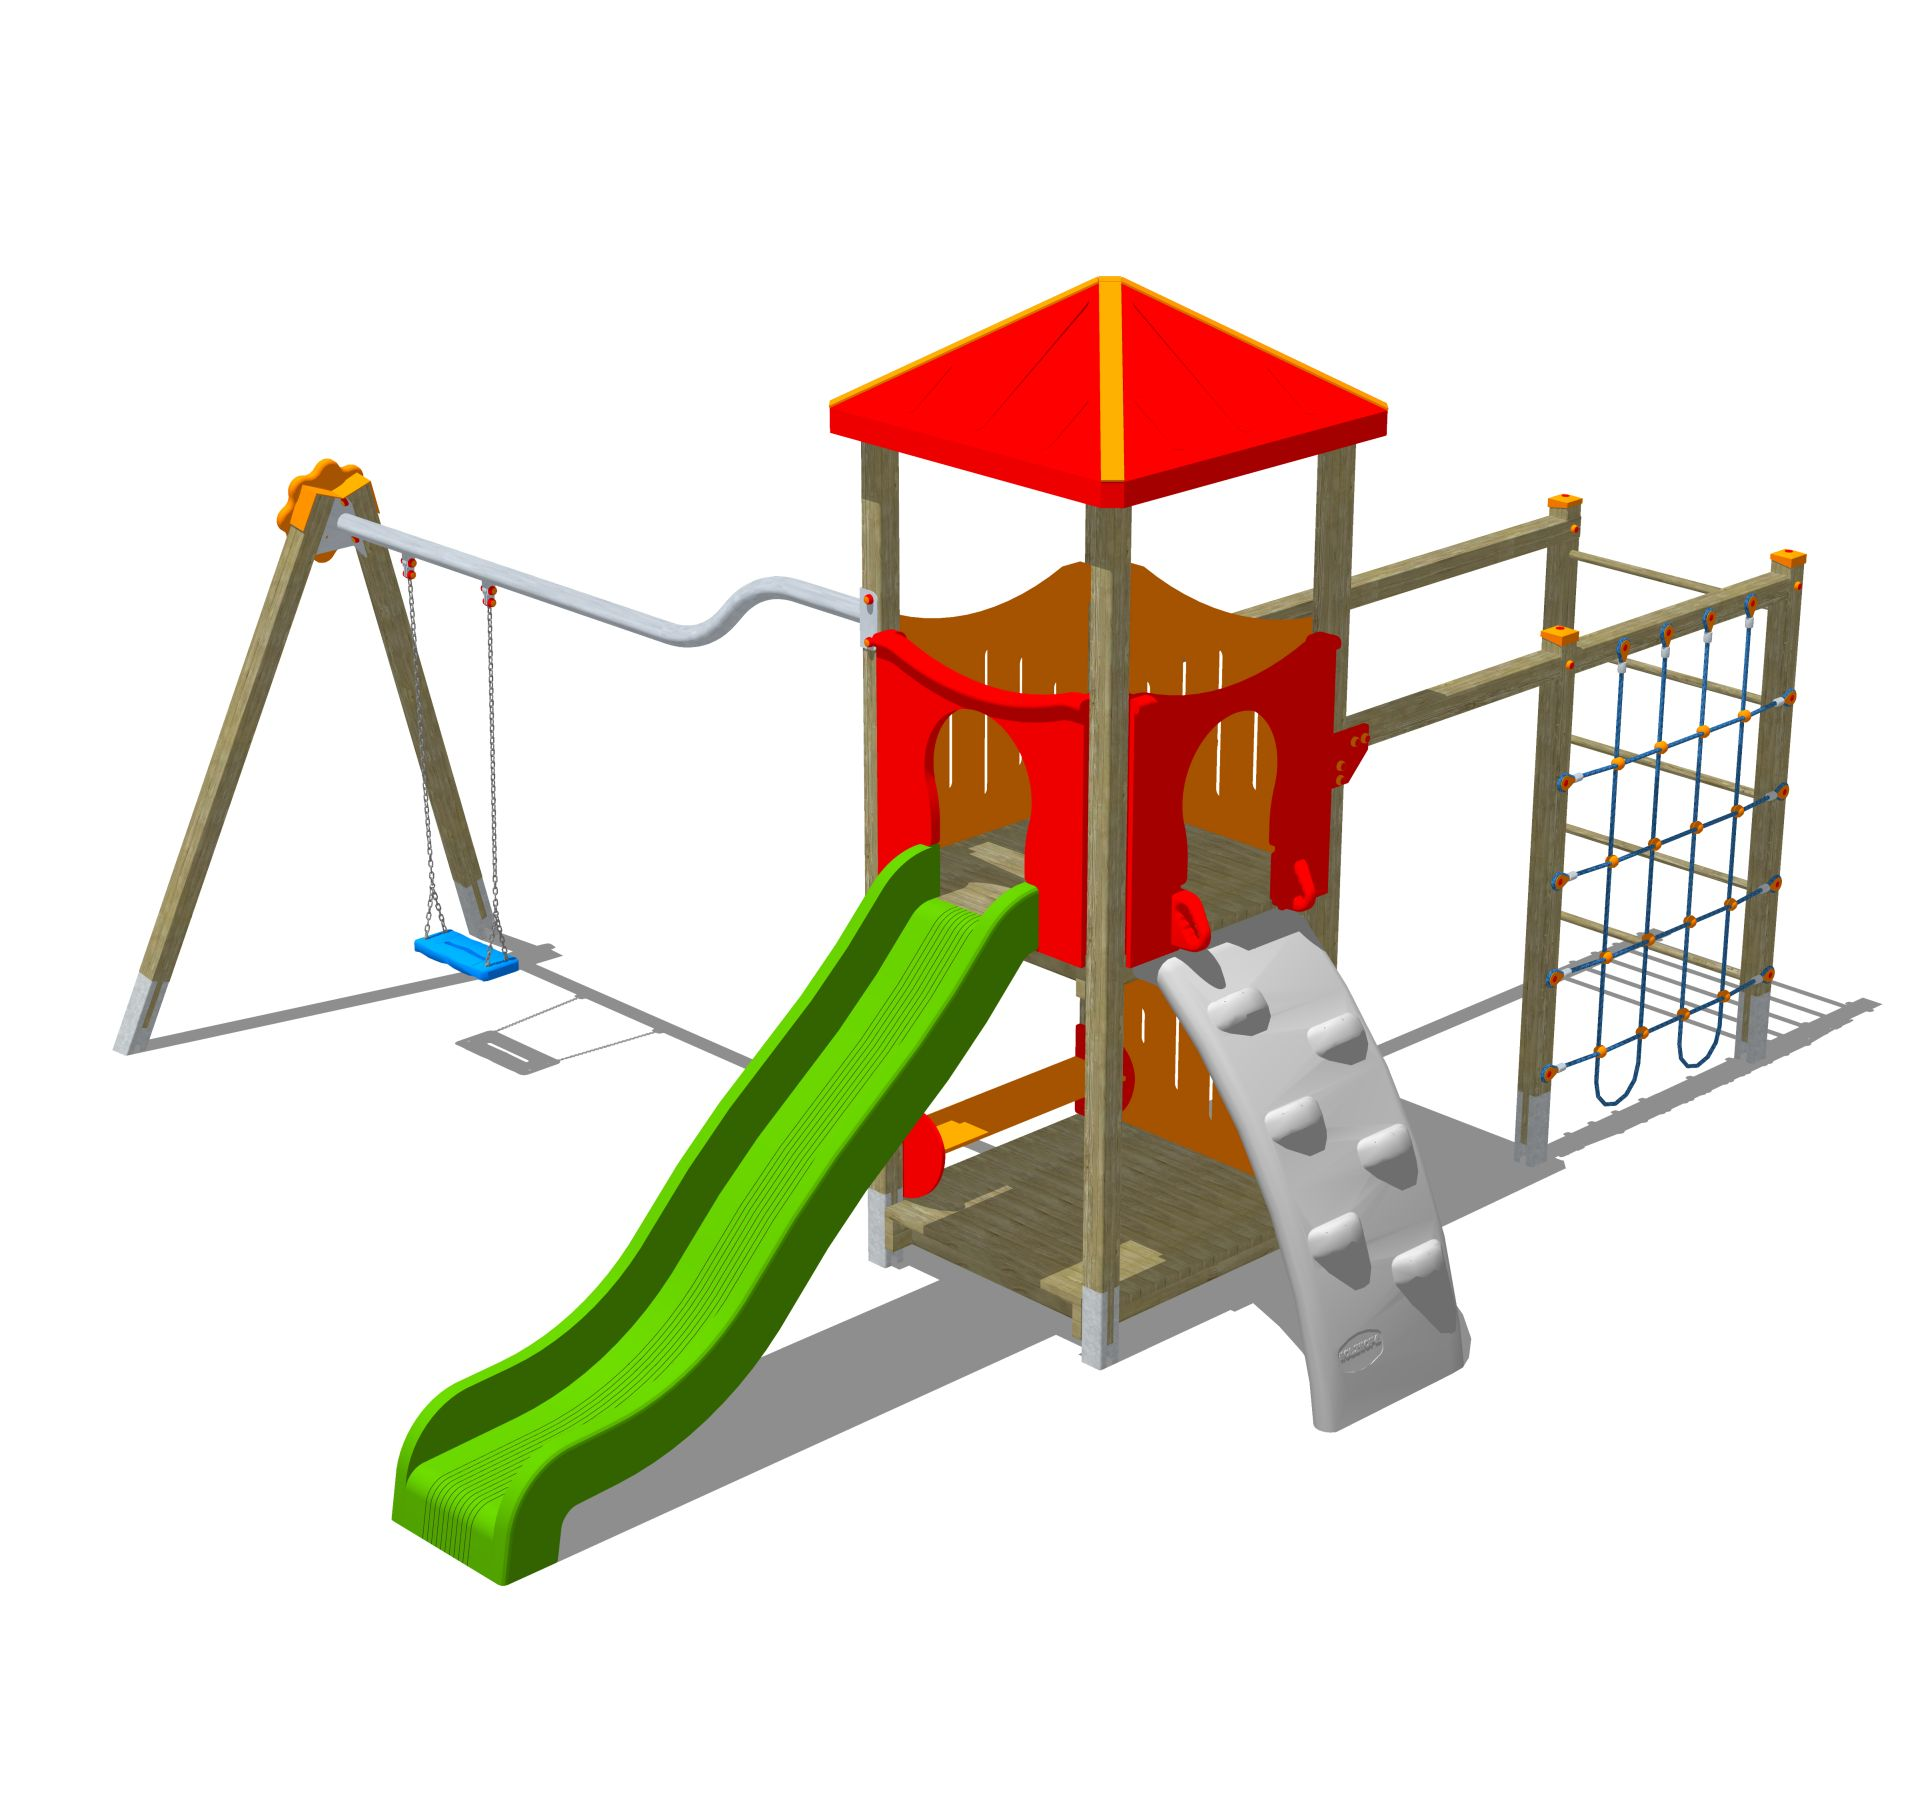 Holzhof MAX & SULTAN Max 1 tower, slide h 144, polyethylene ramp + swing 1 plank seat + rope wall climber